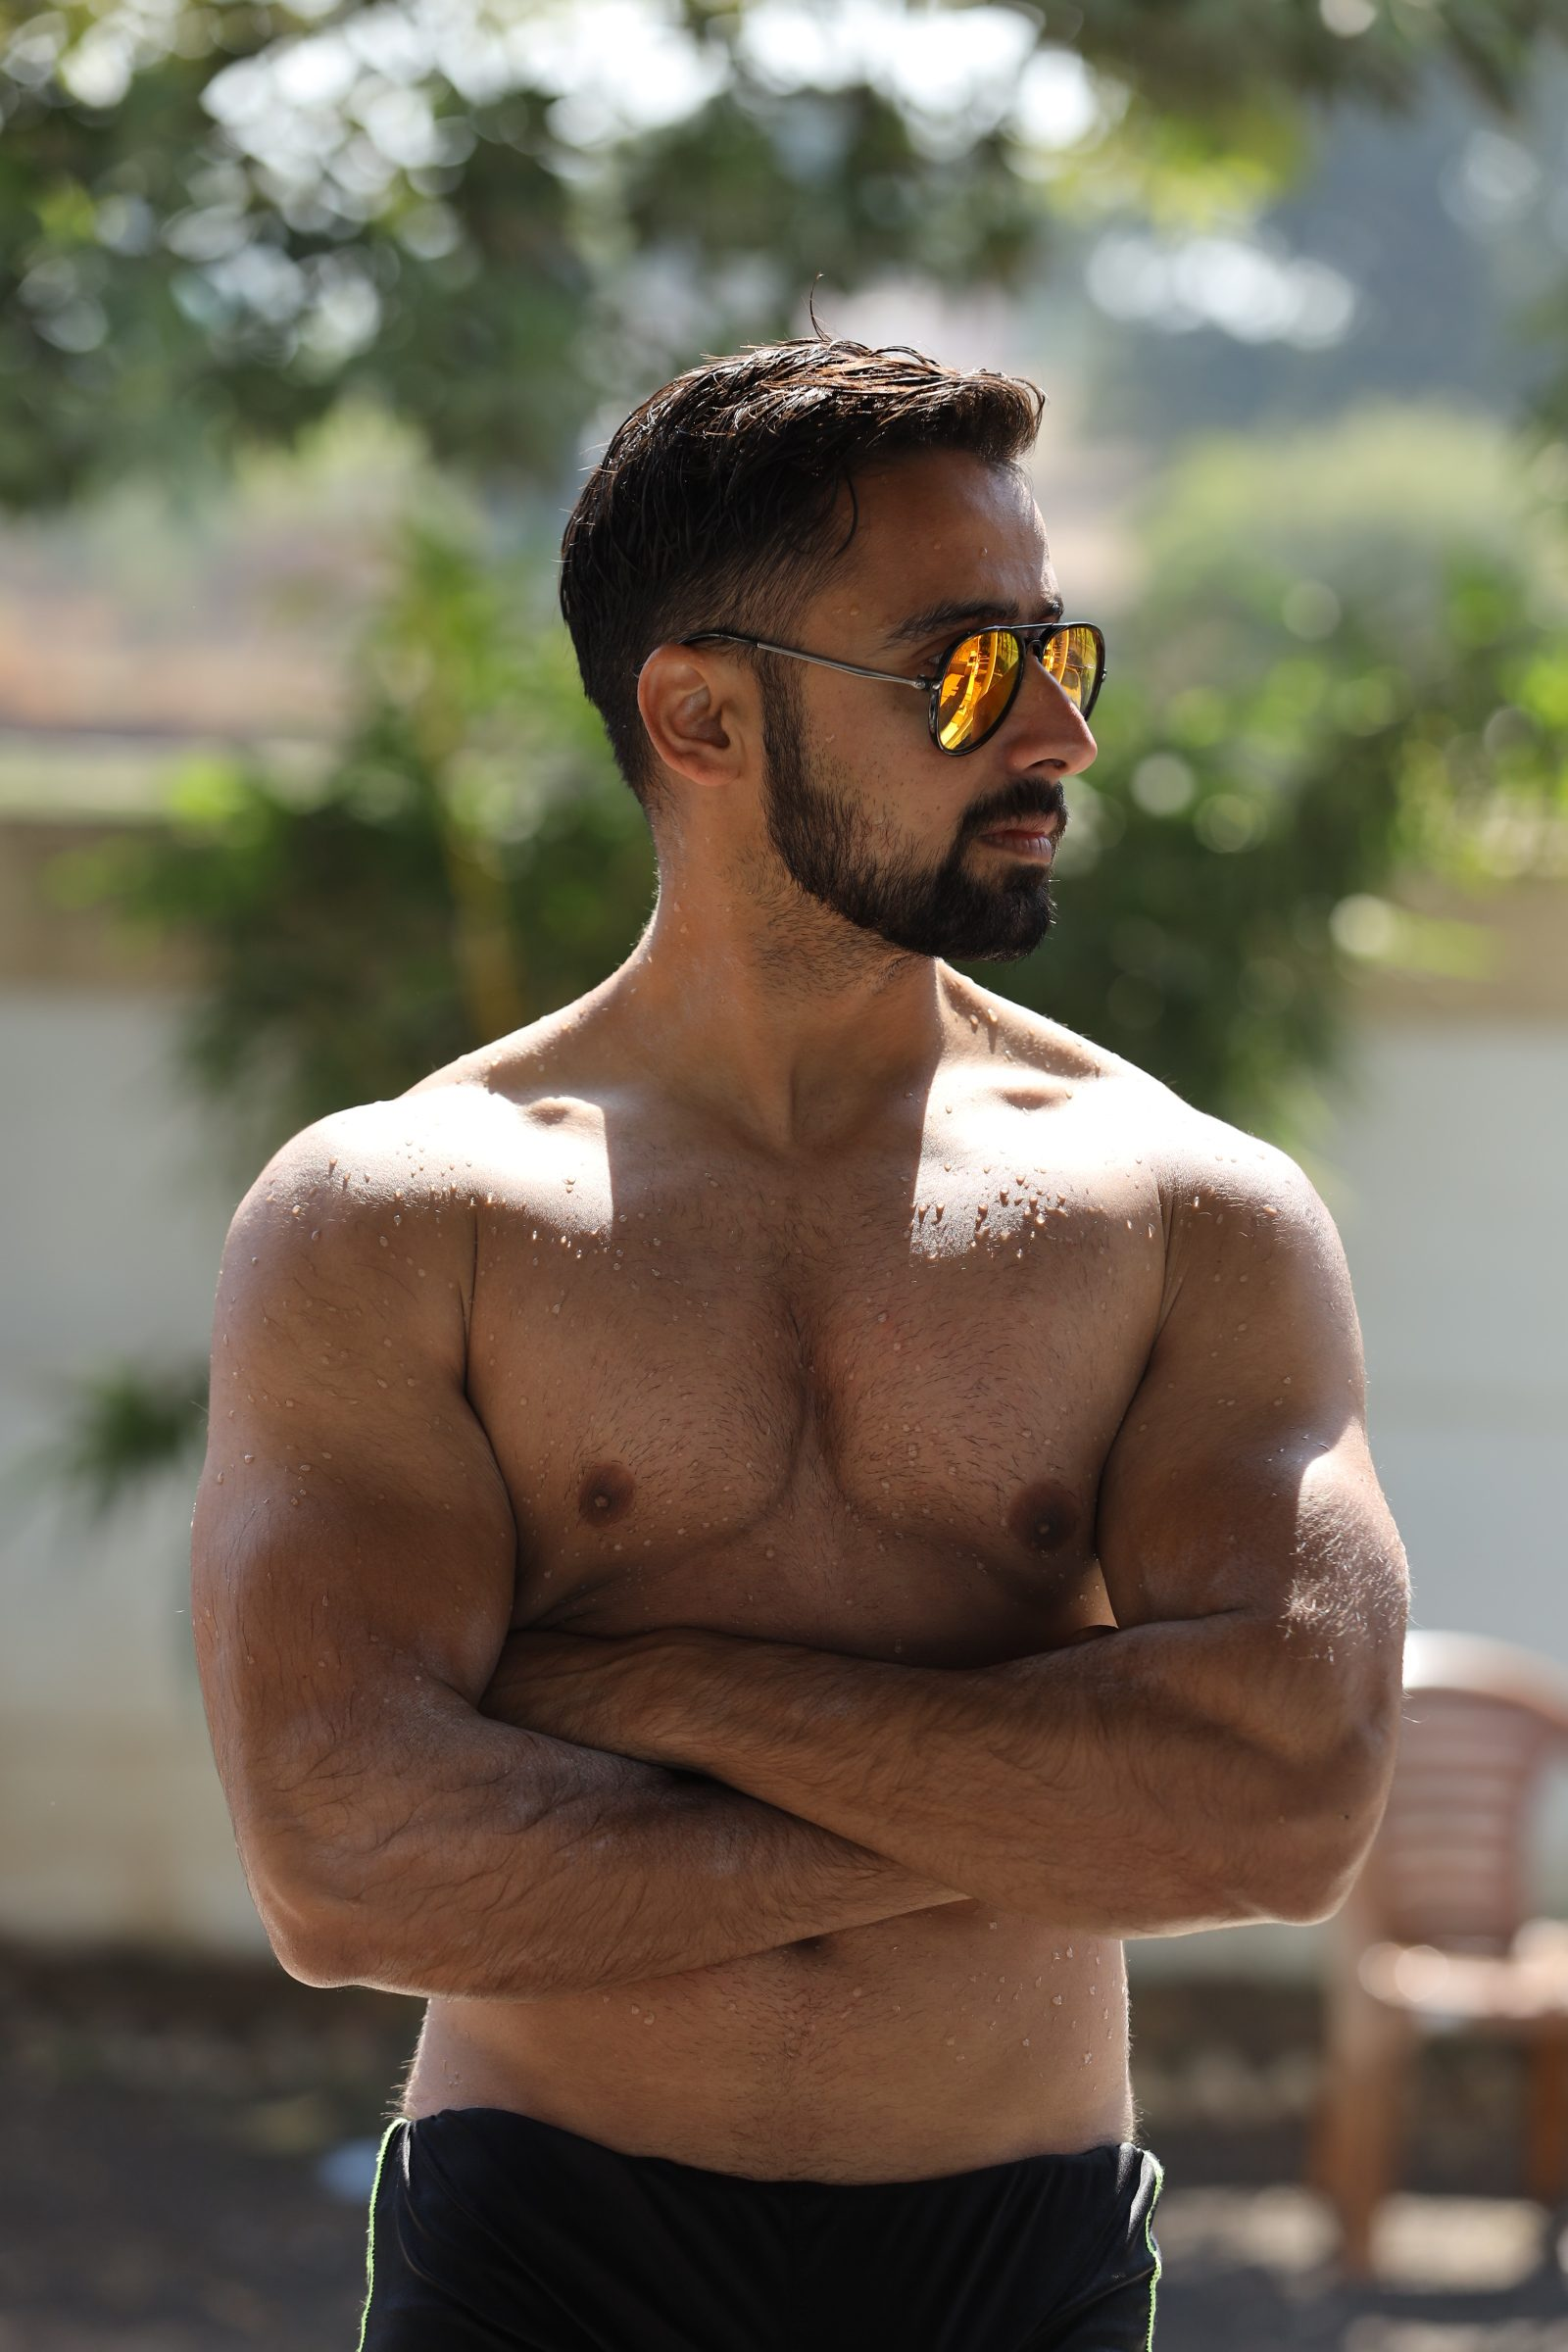 Male physique pose